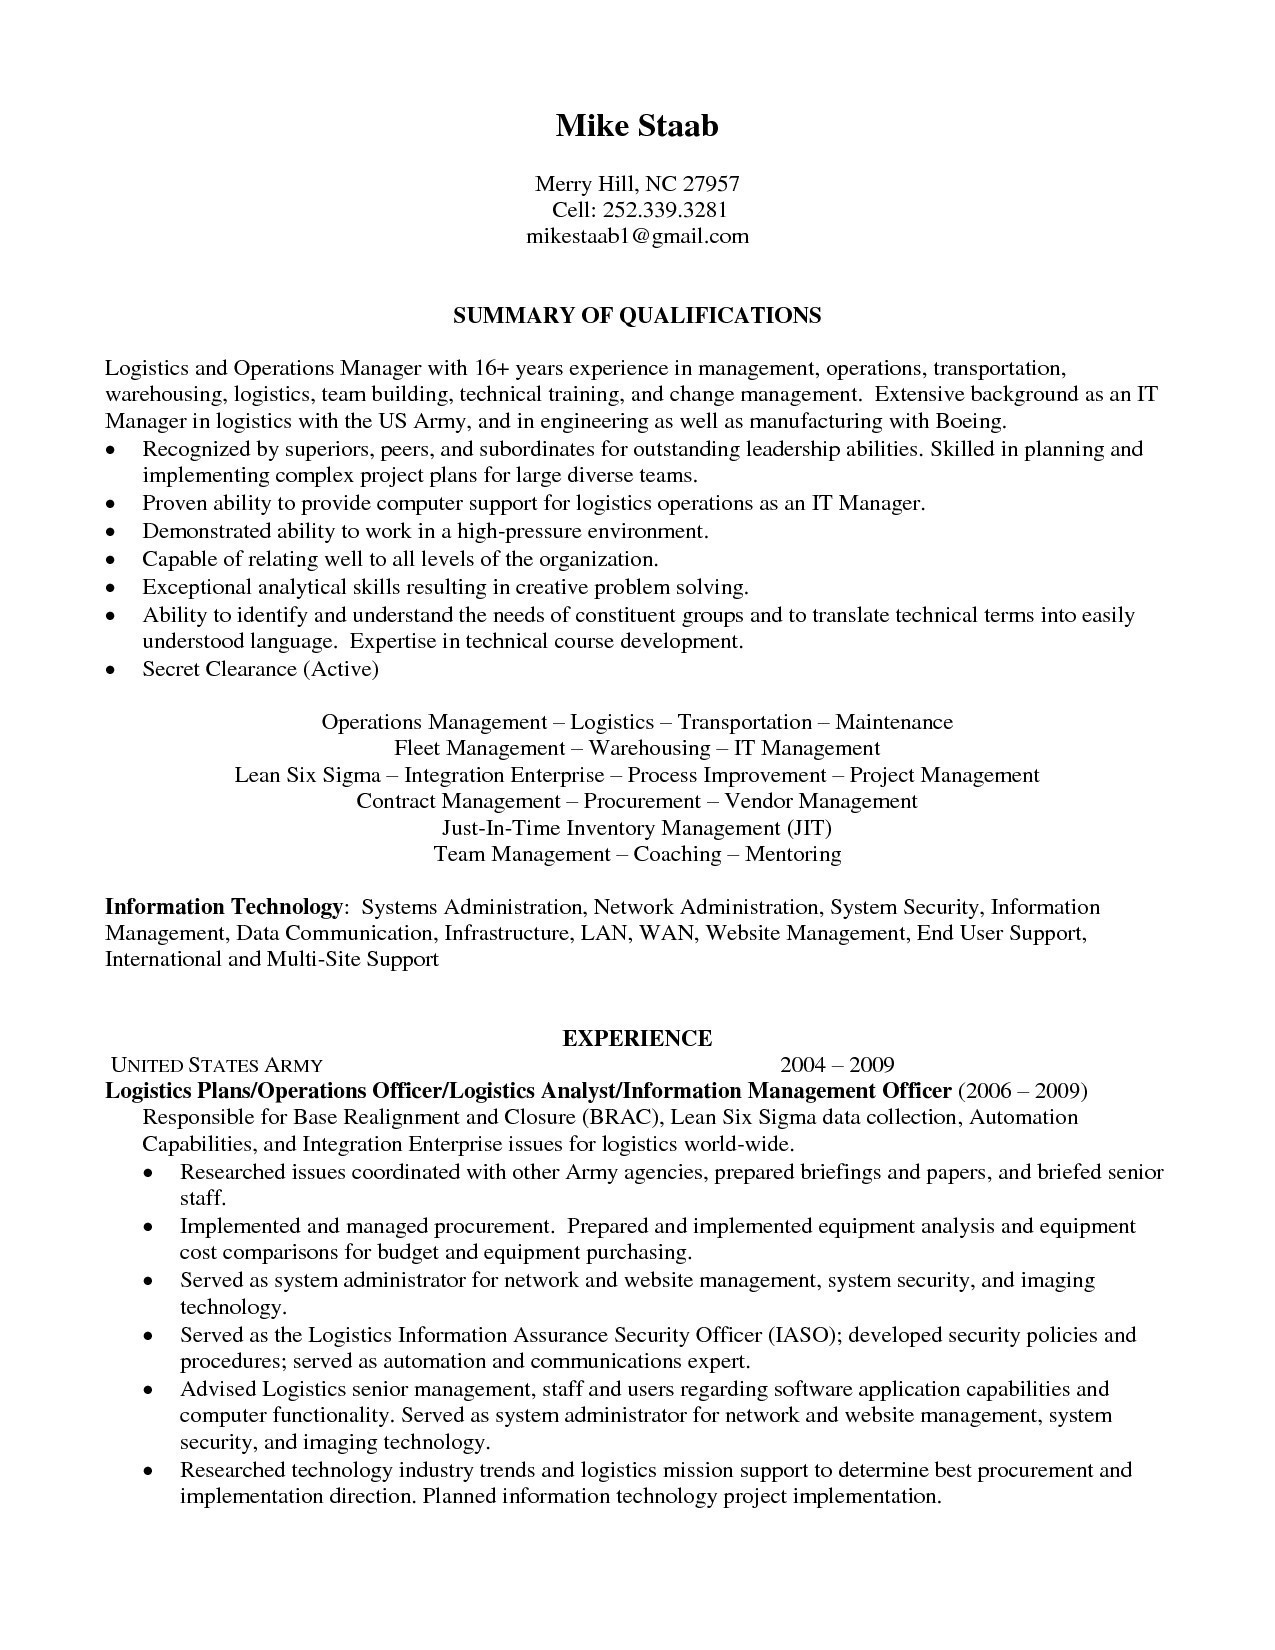 Food Service Manager Resume - 30 Unique Food Service Manager Resume